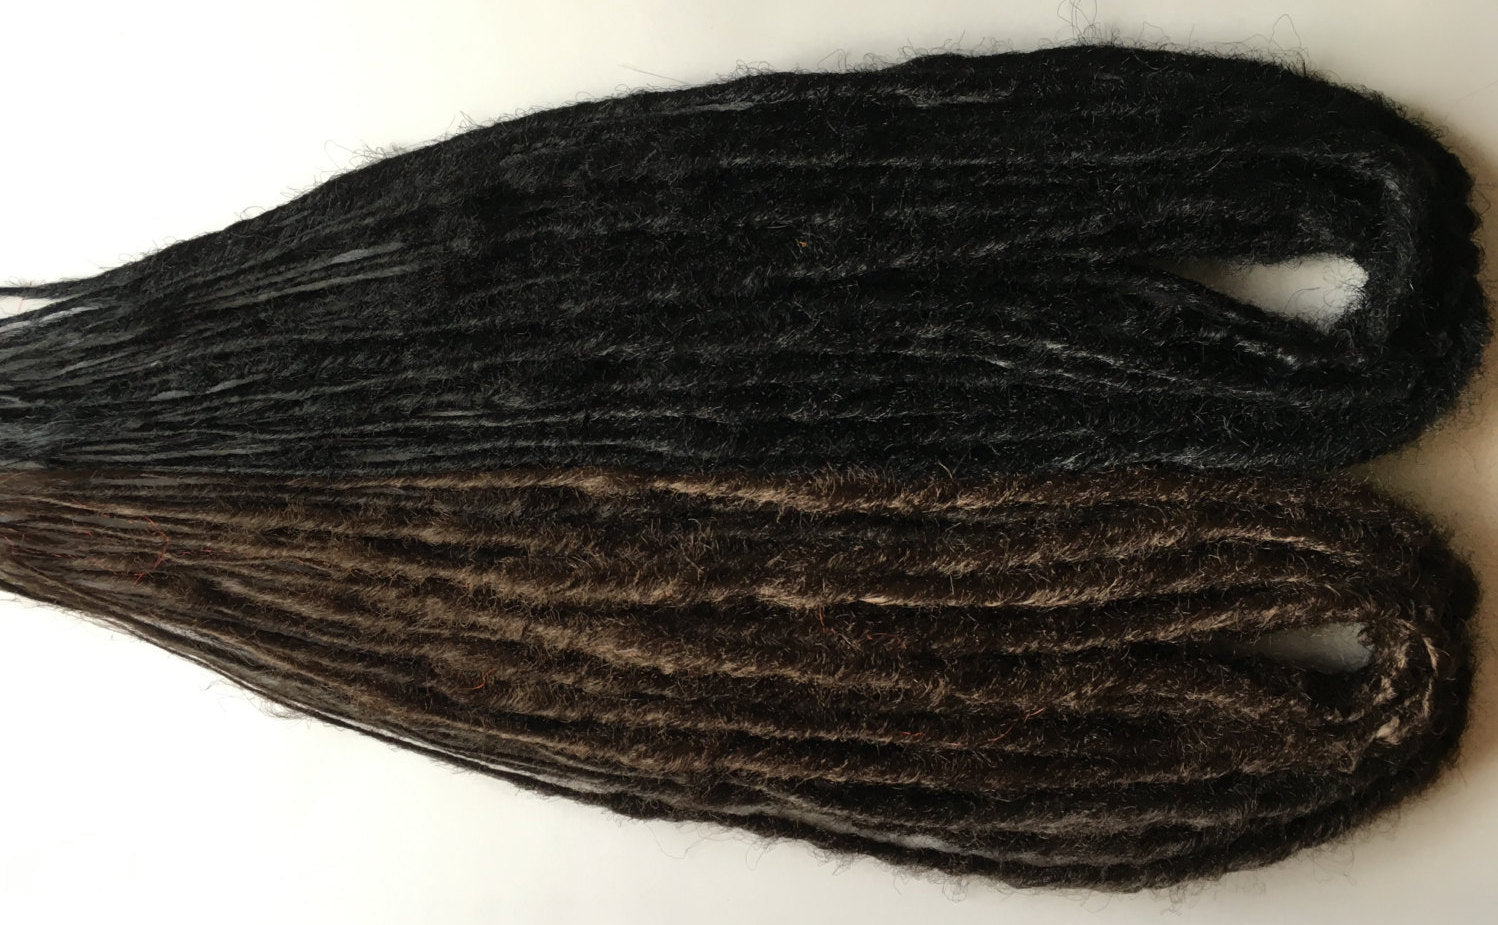 100 SE Count Dread Brown Black Braid Dreadlock Hair Extensions or Dread Falls